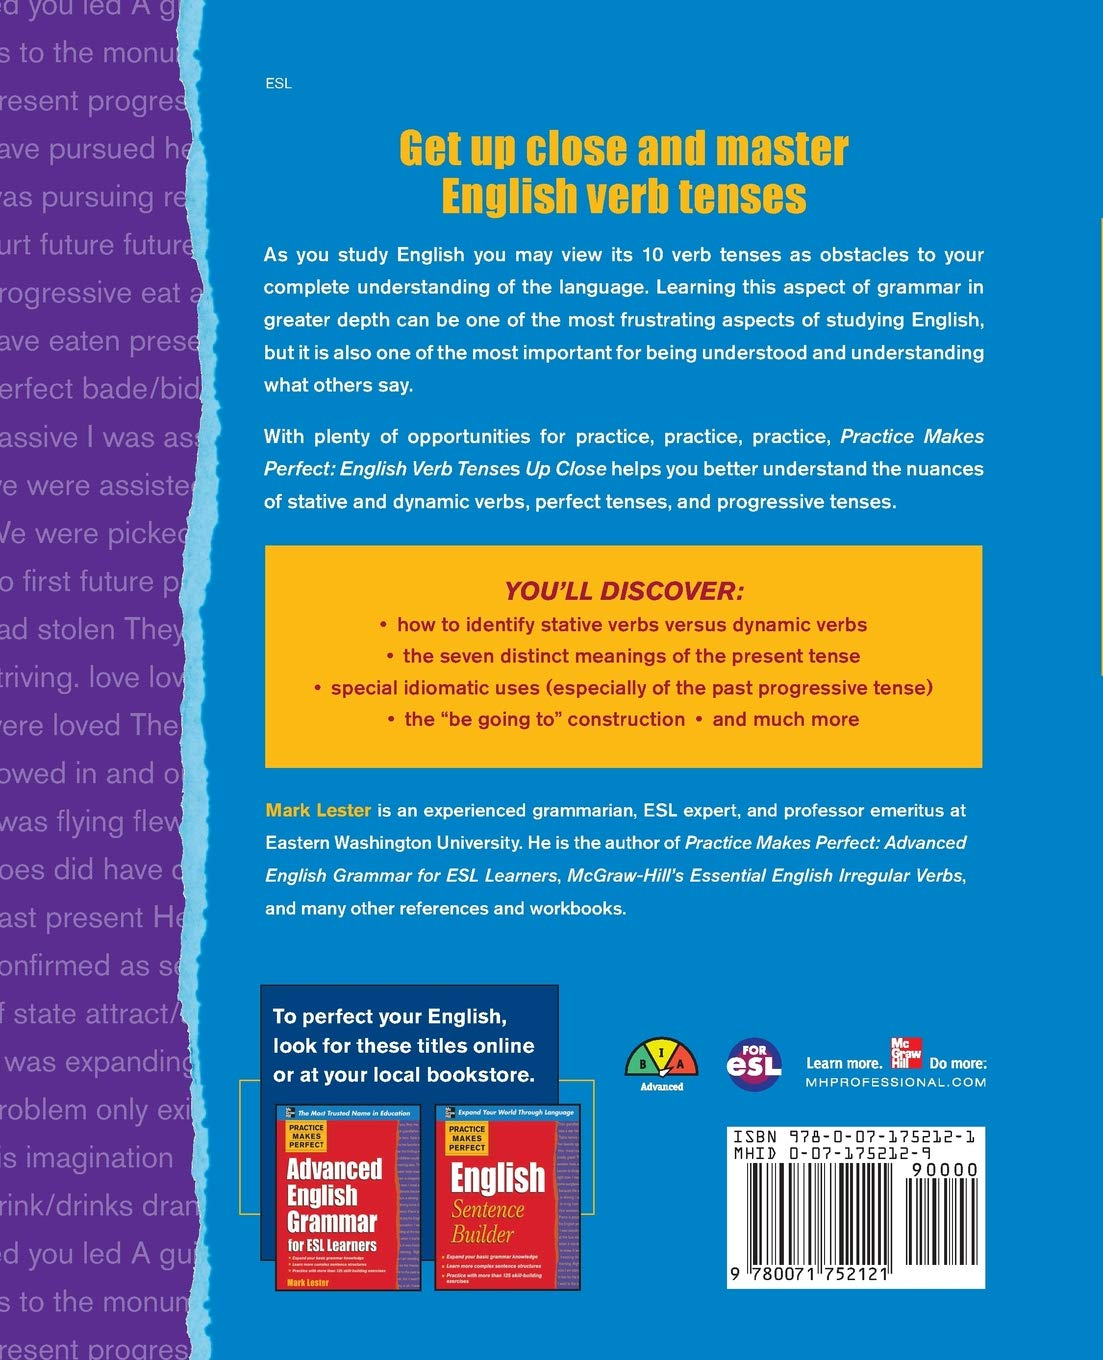 Buy Practice Makes Perfect English Verb Tenses Up Close (Practice